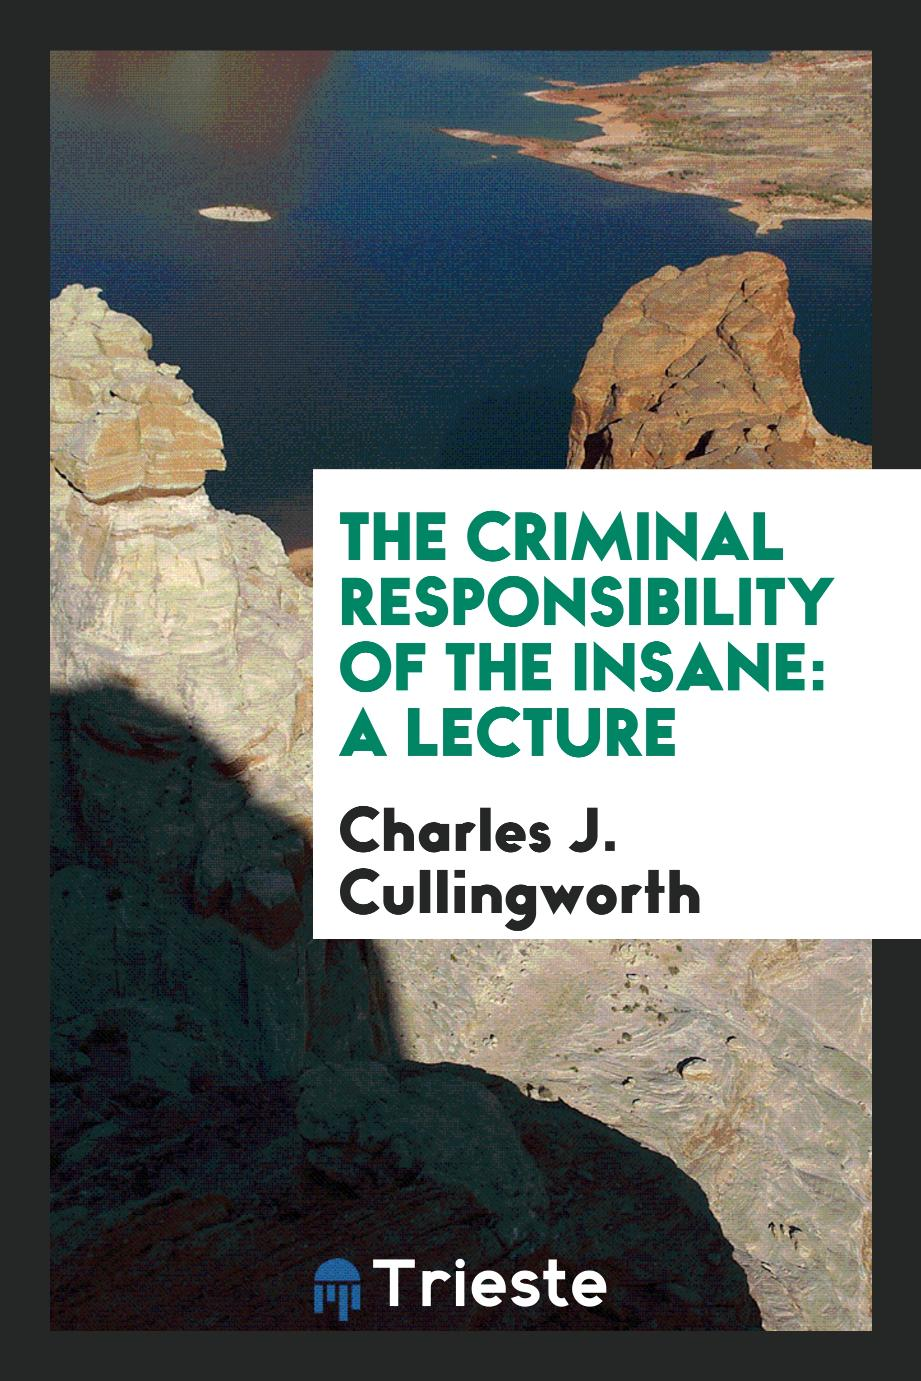 The Criminal Responsibility of the Insane: A Lecture